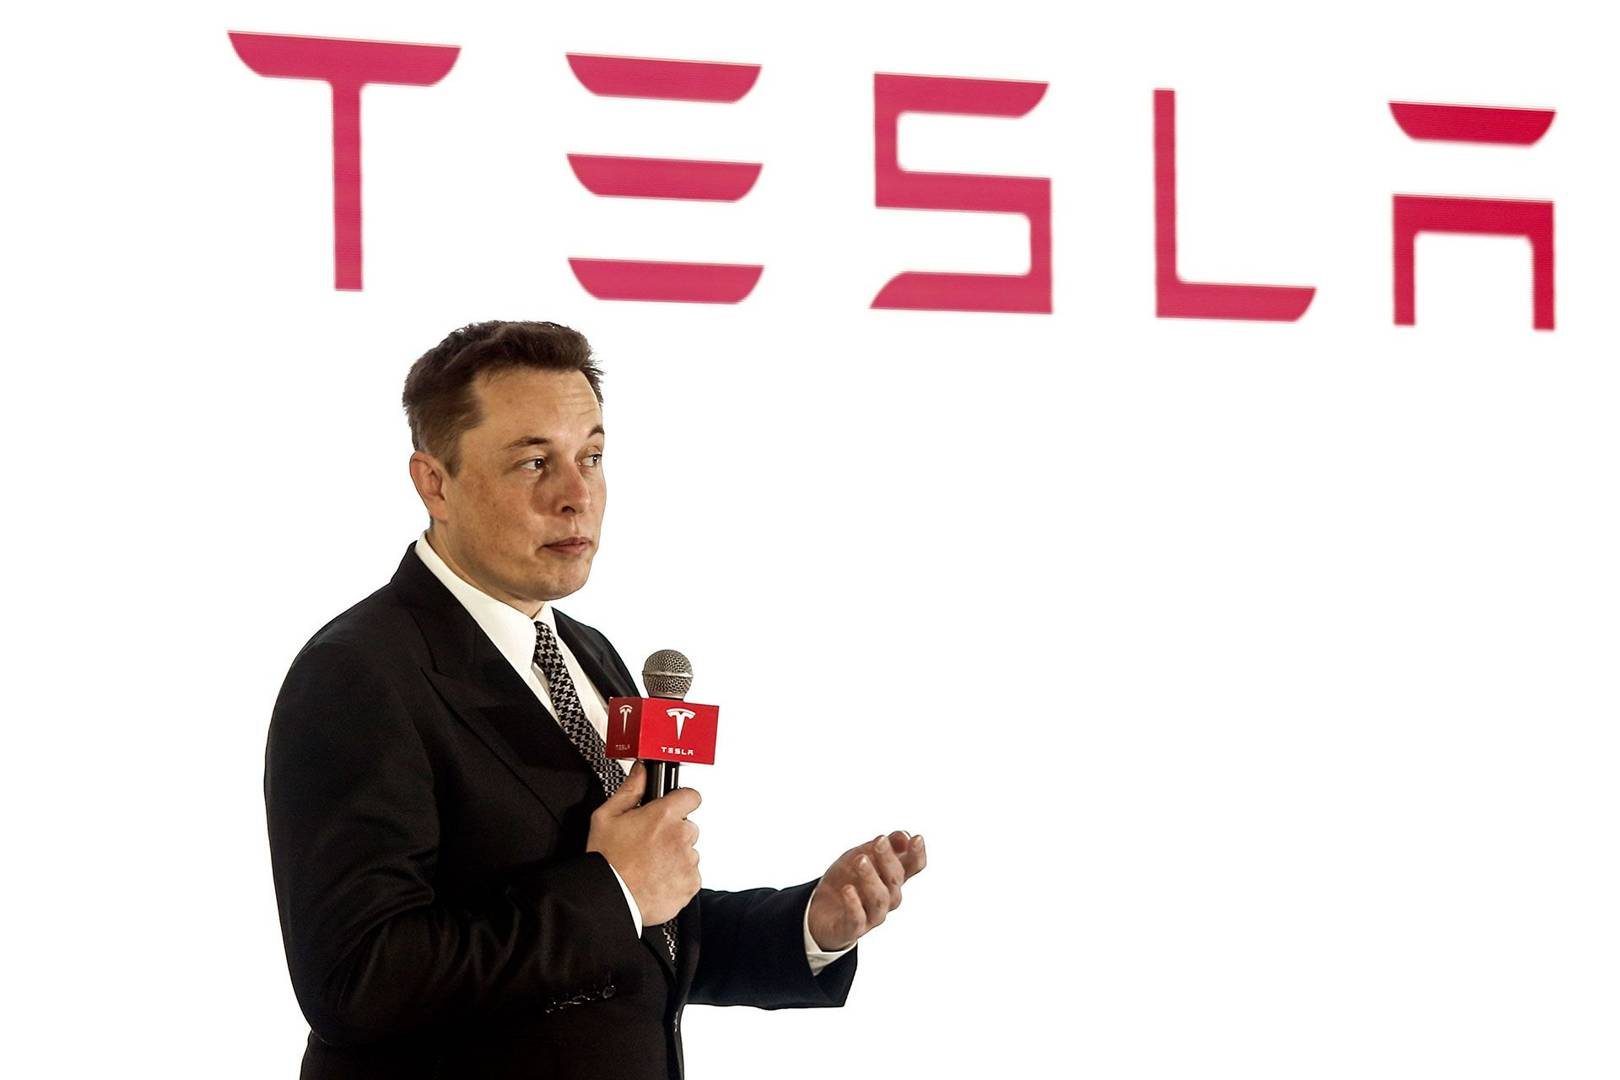 Friday briefing: SEC fraud suit seeks to ban Elon Musk from running companies